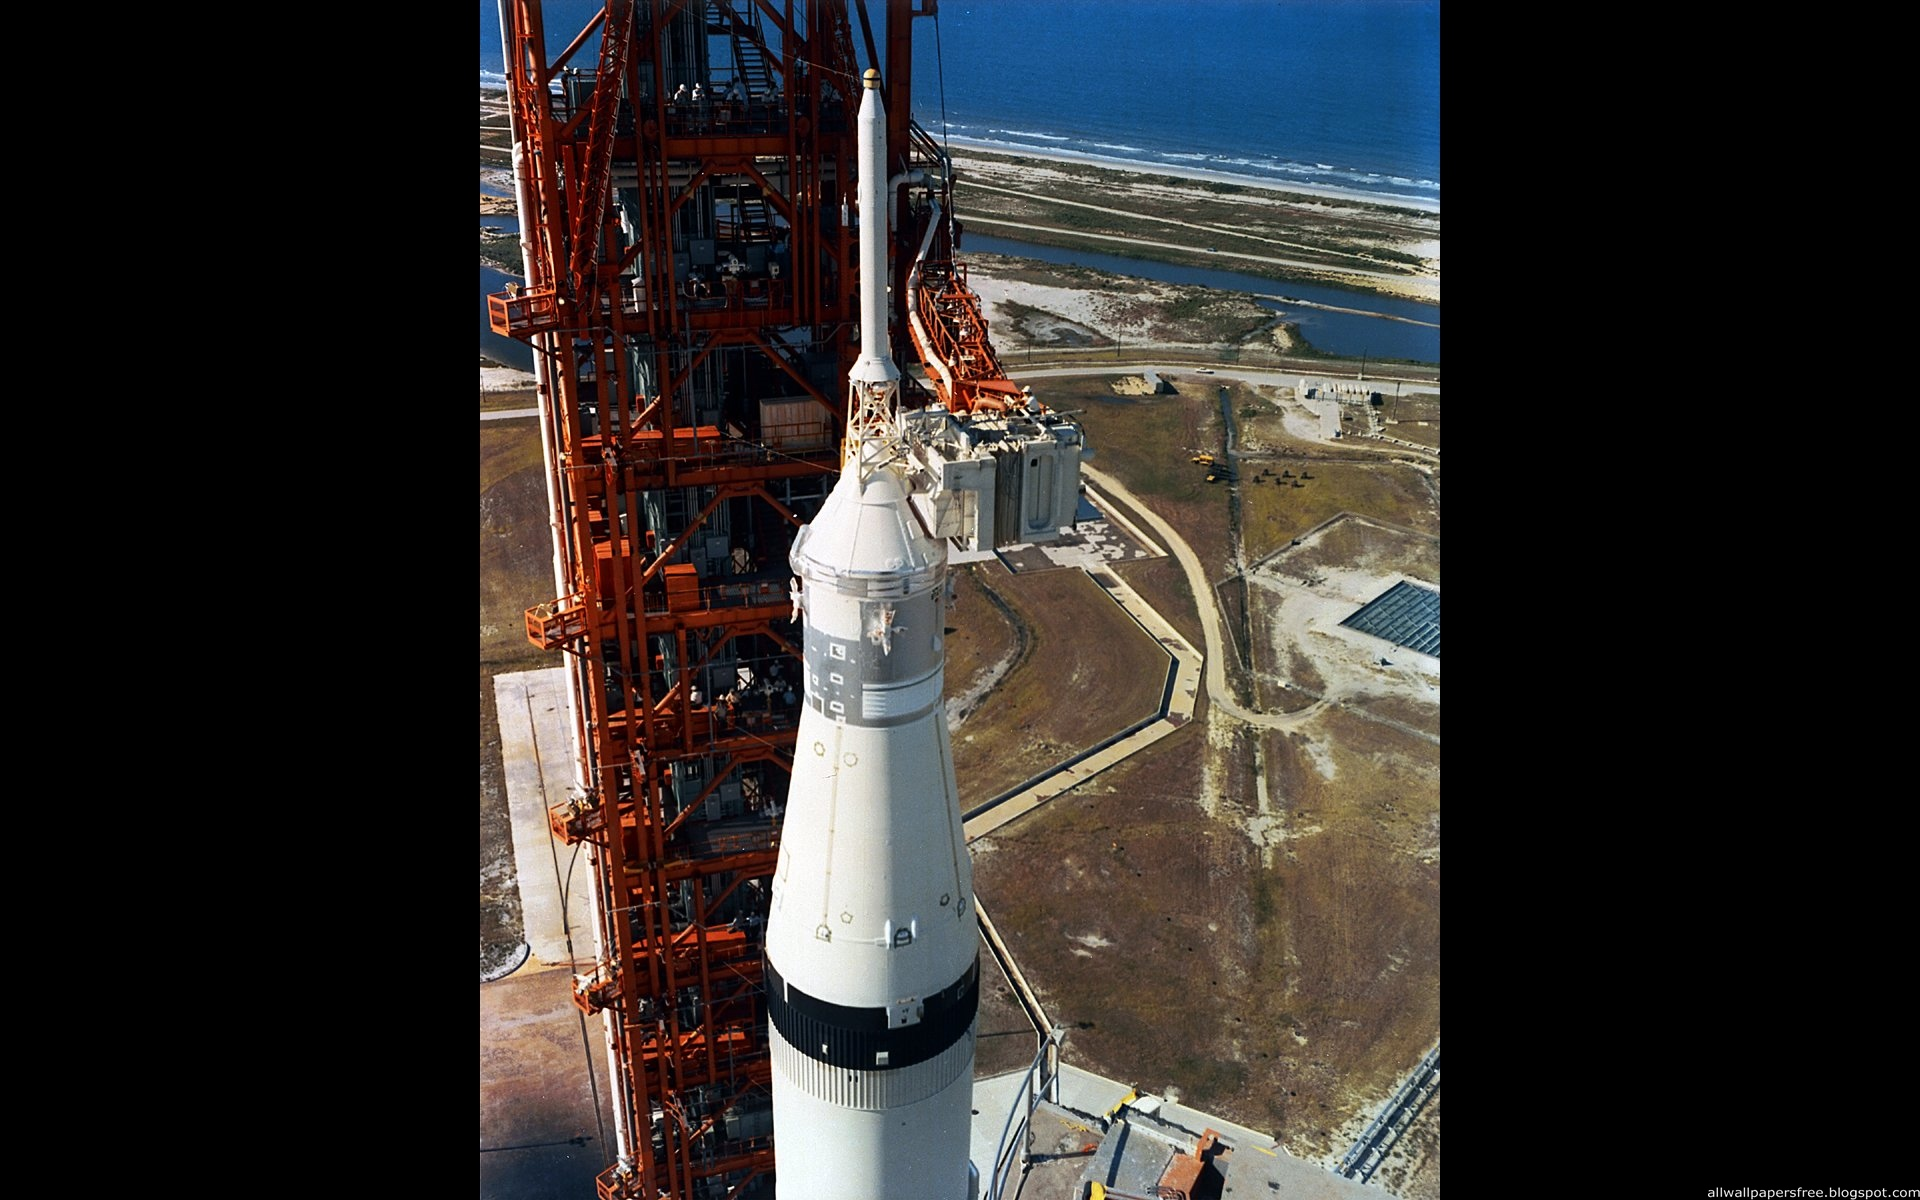 hd apollo 1 rocket - photo #29